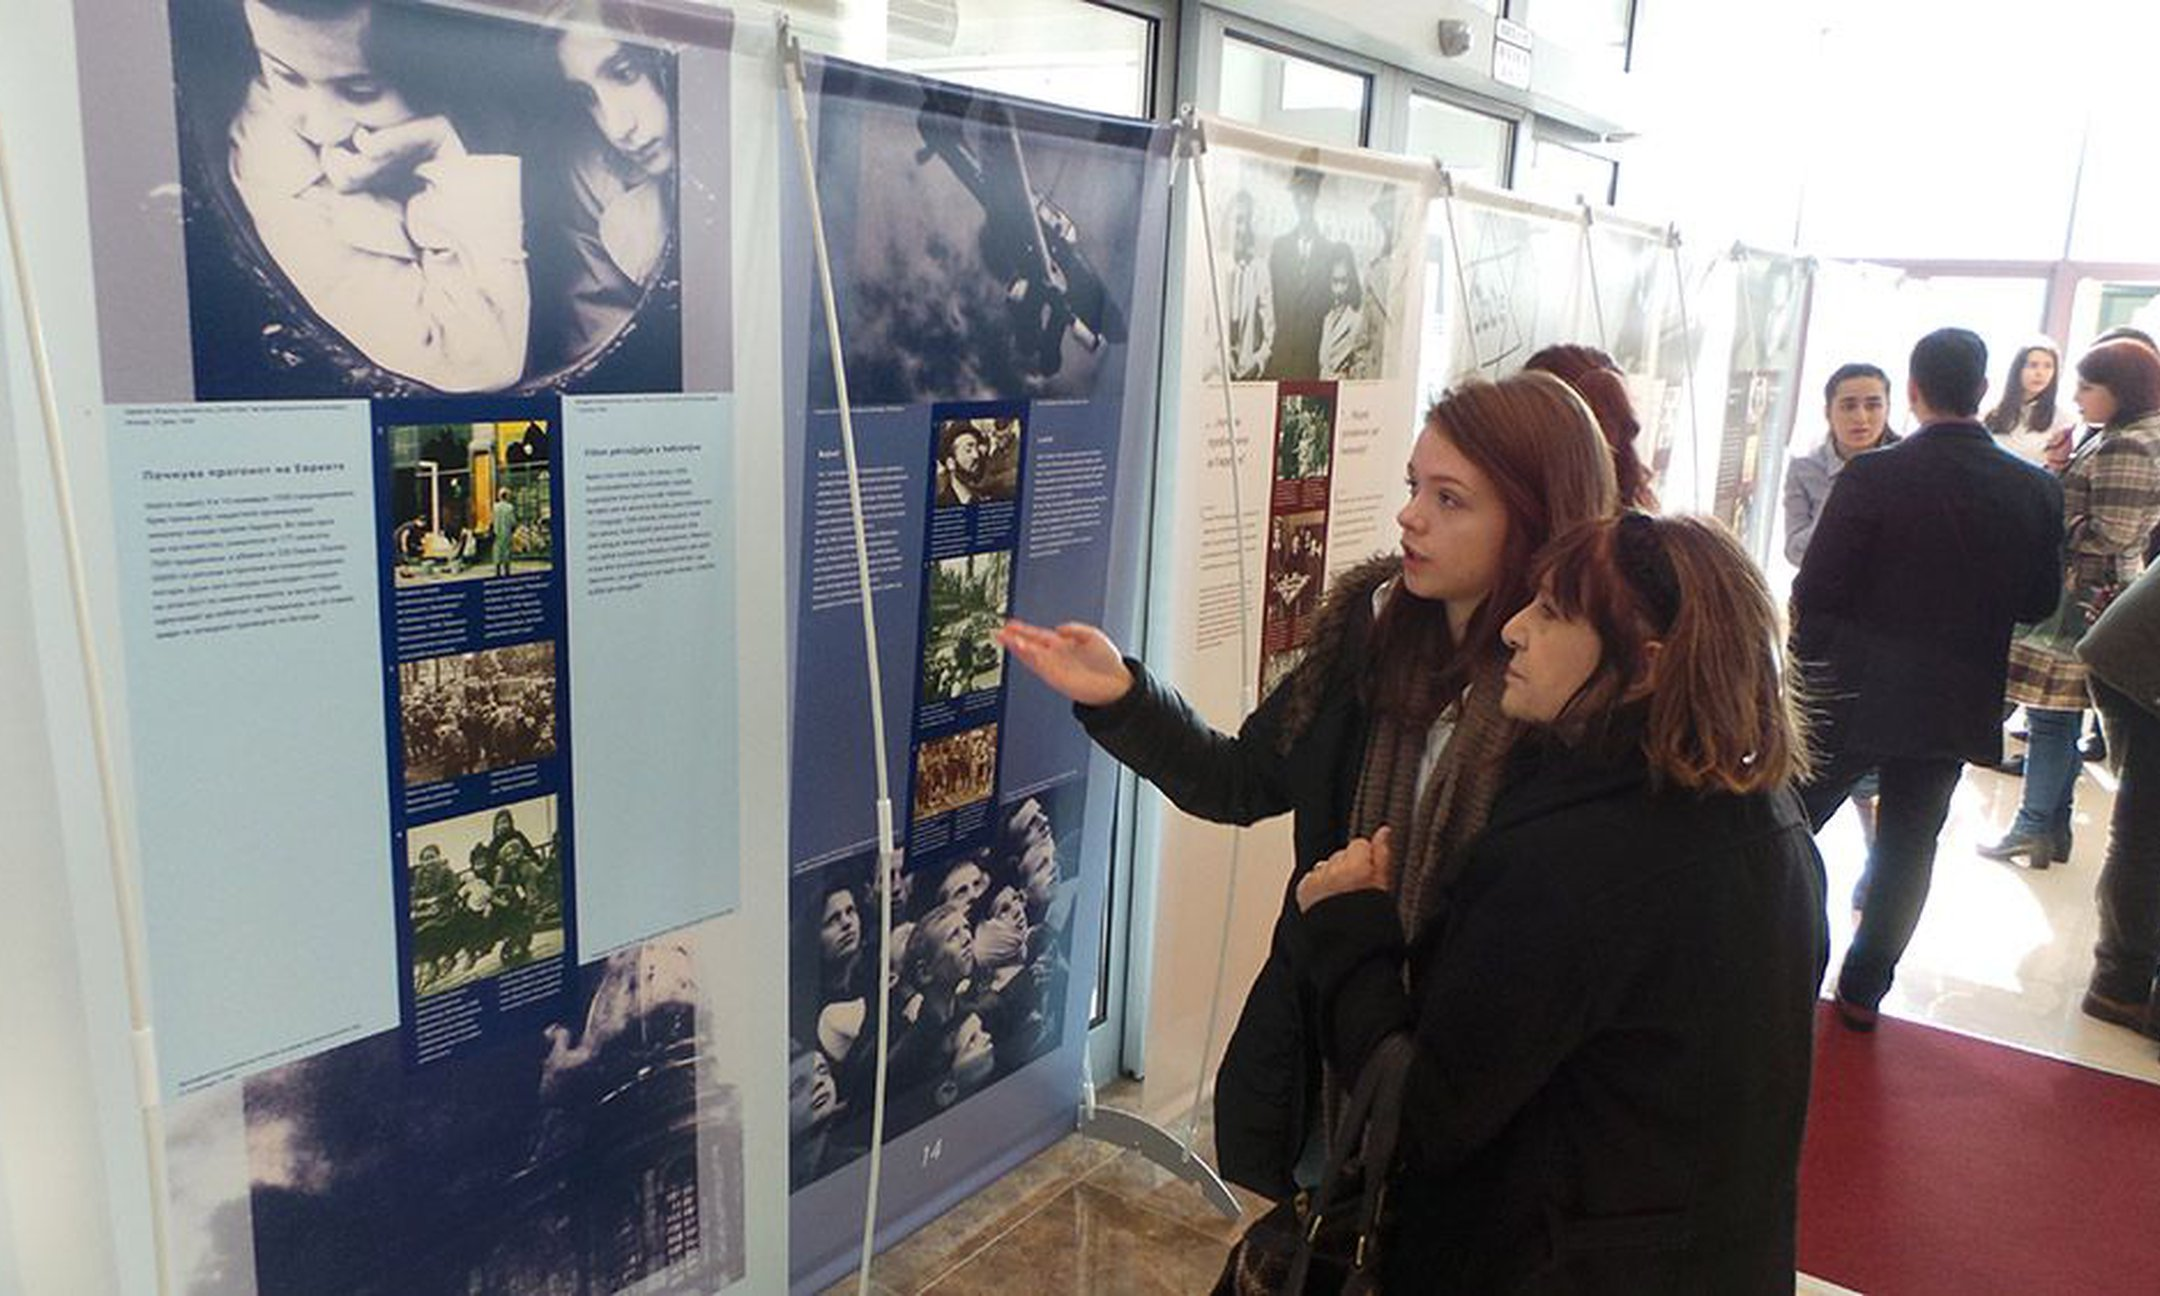 Peer guide presenting the exhibition in the first opening in Skopje (January 2016)